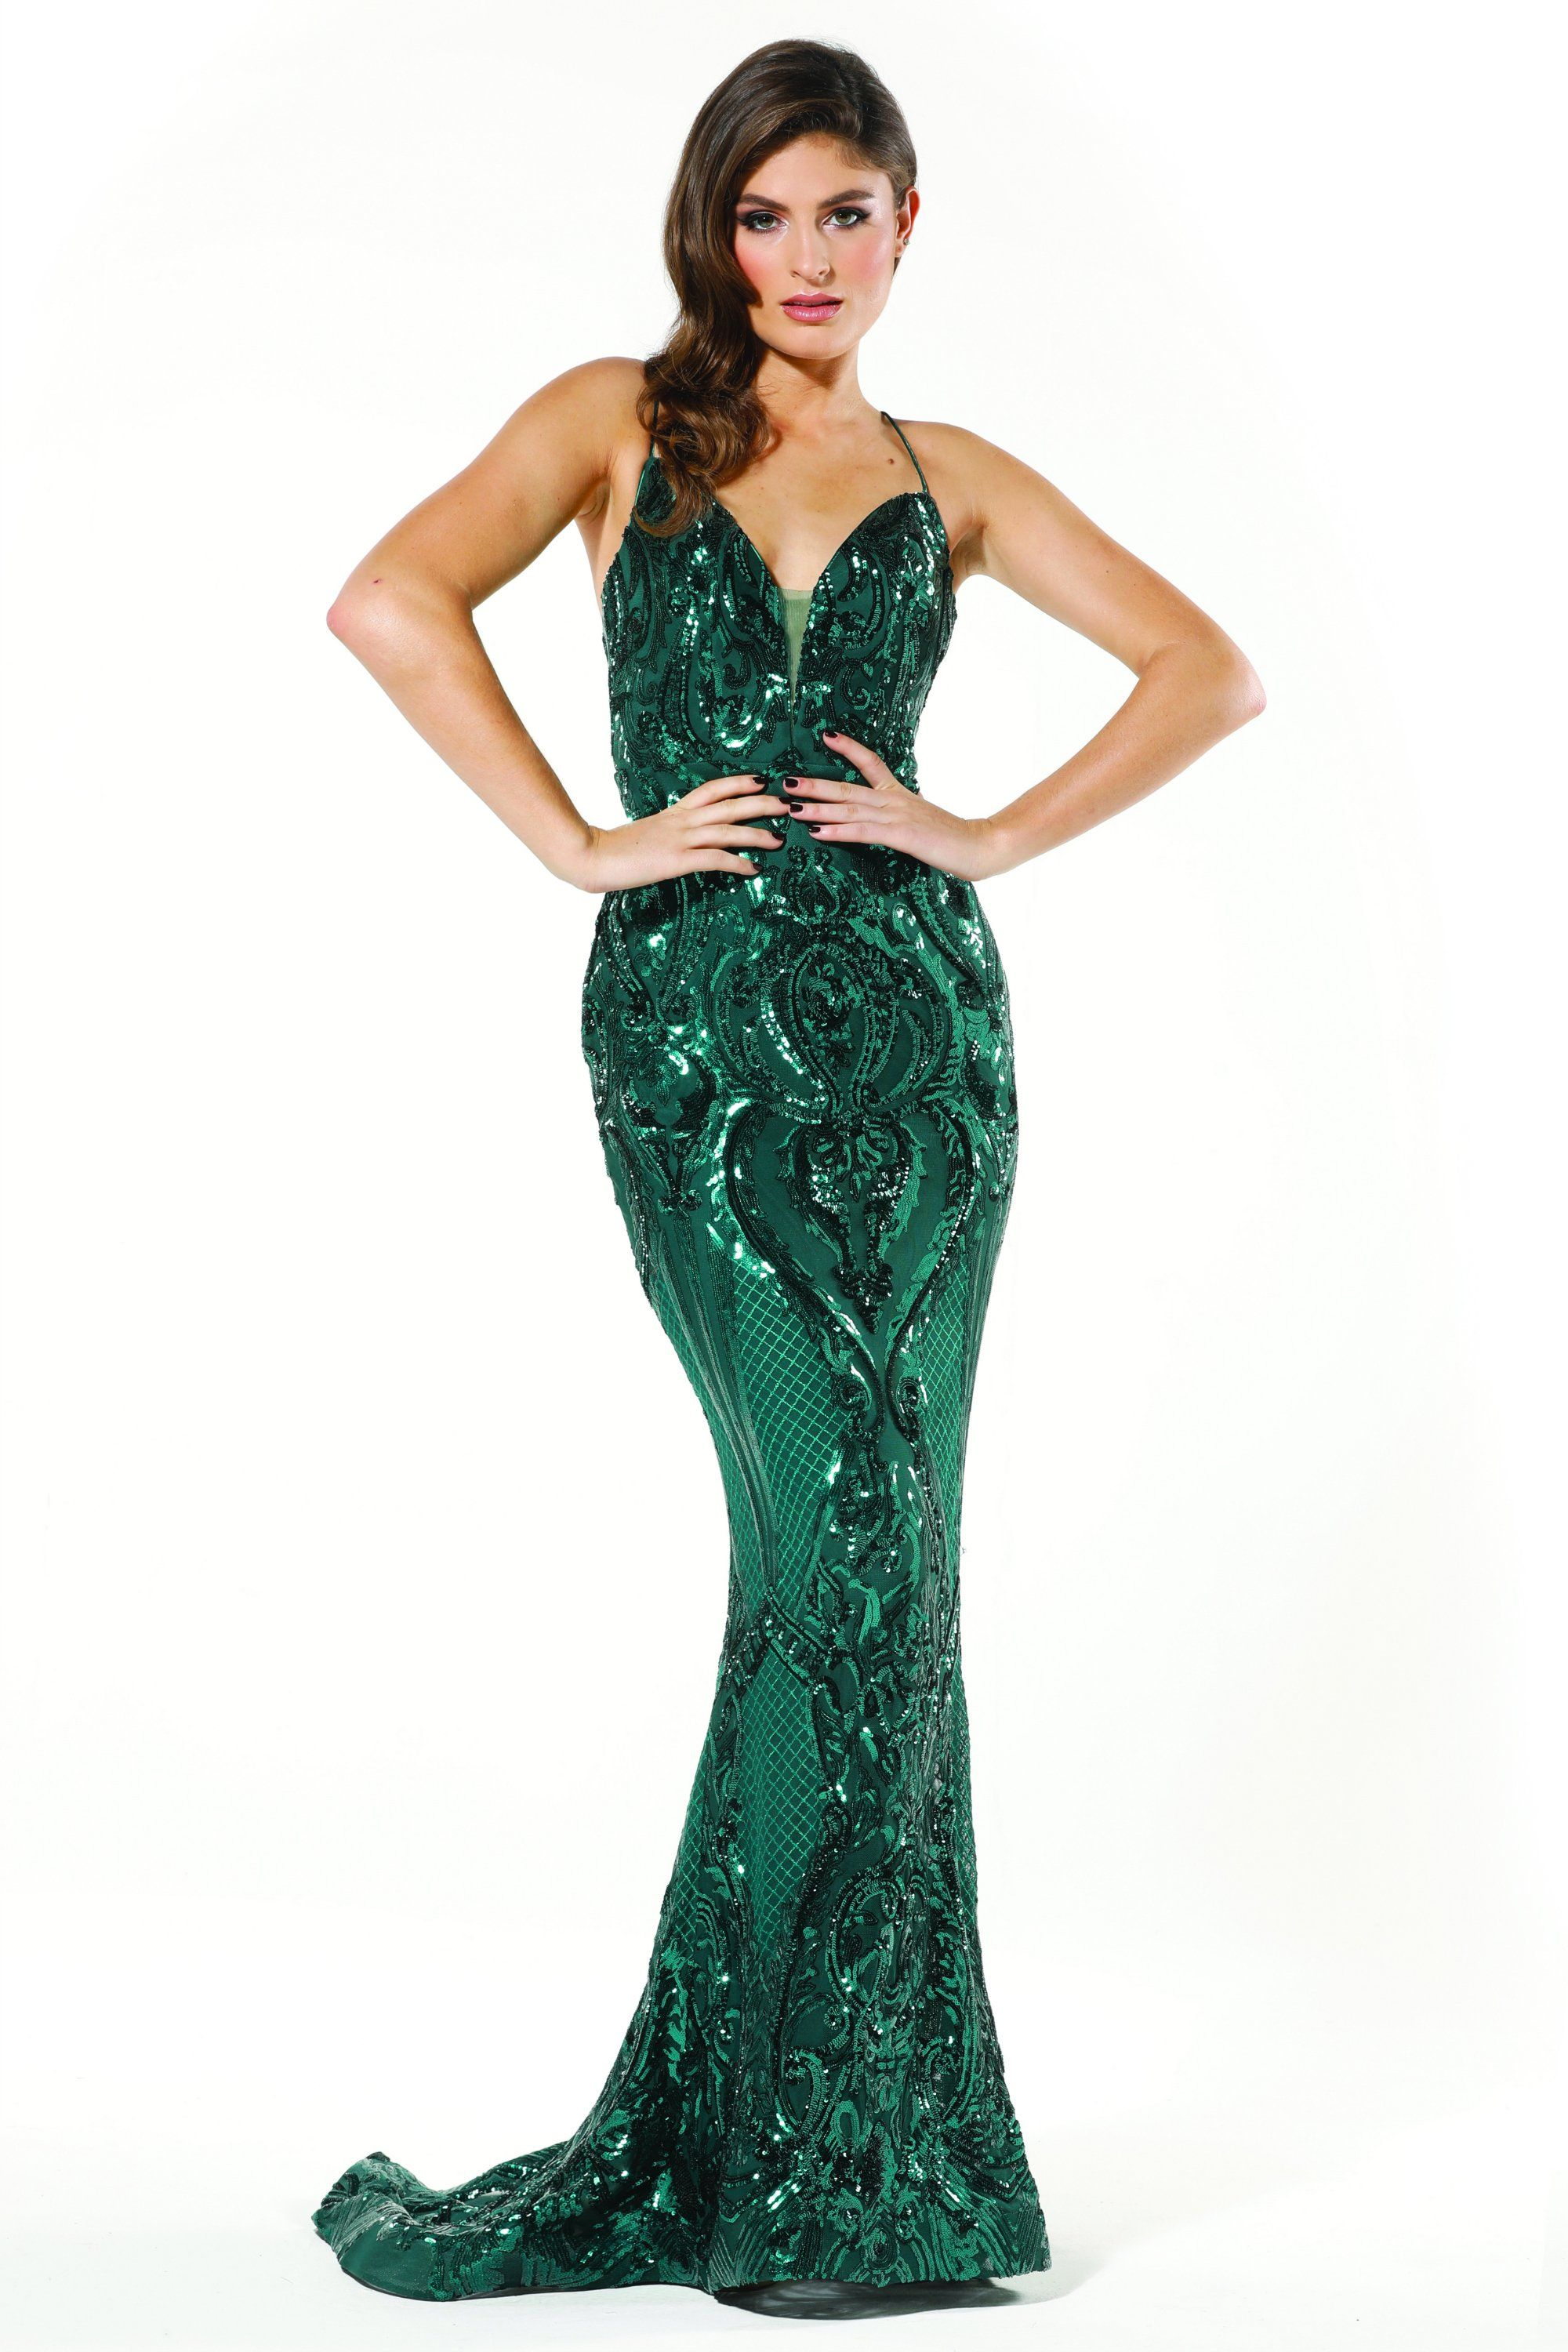 Tinaholy Couture T19280 Emerald Green Mermaid Formal Prom Dress [ 3000 x 2000 Pixel ]